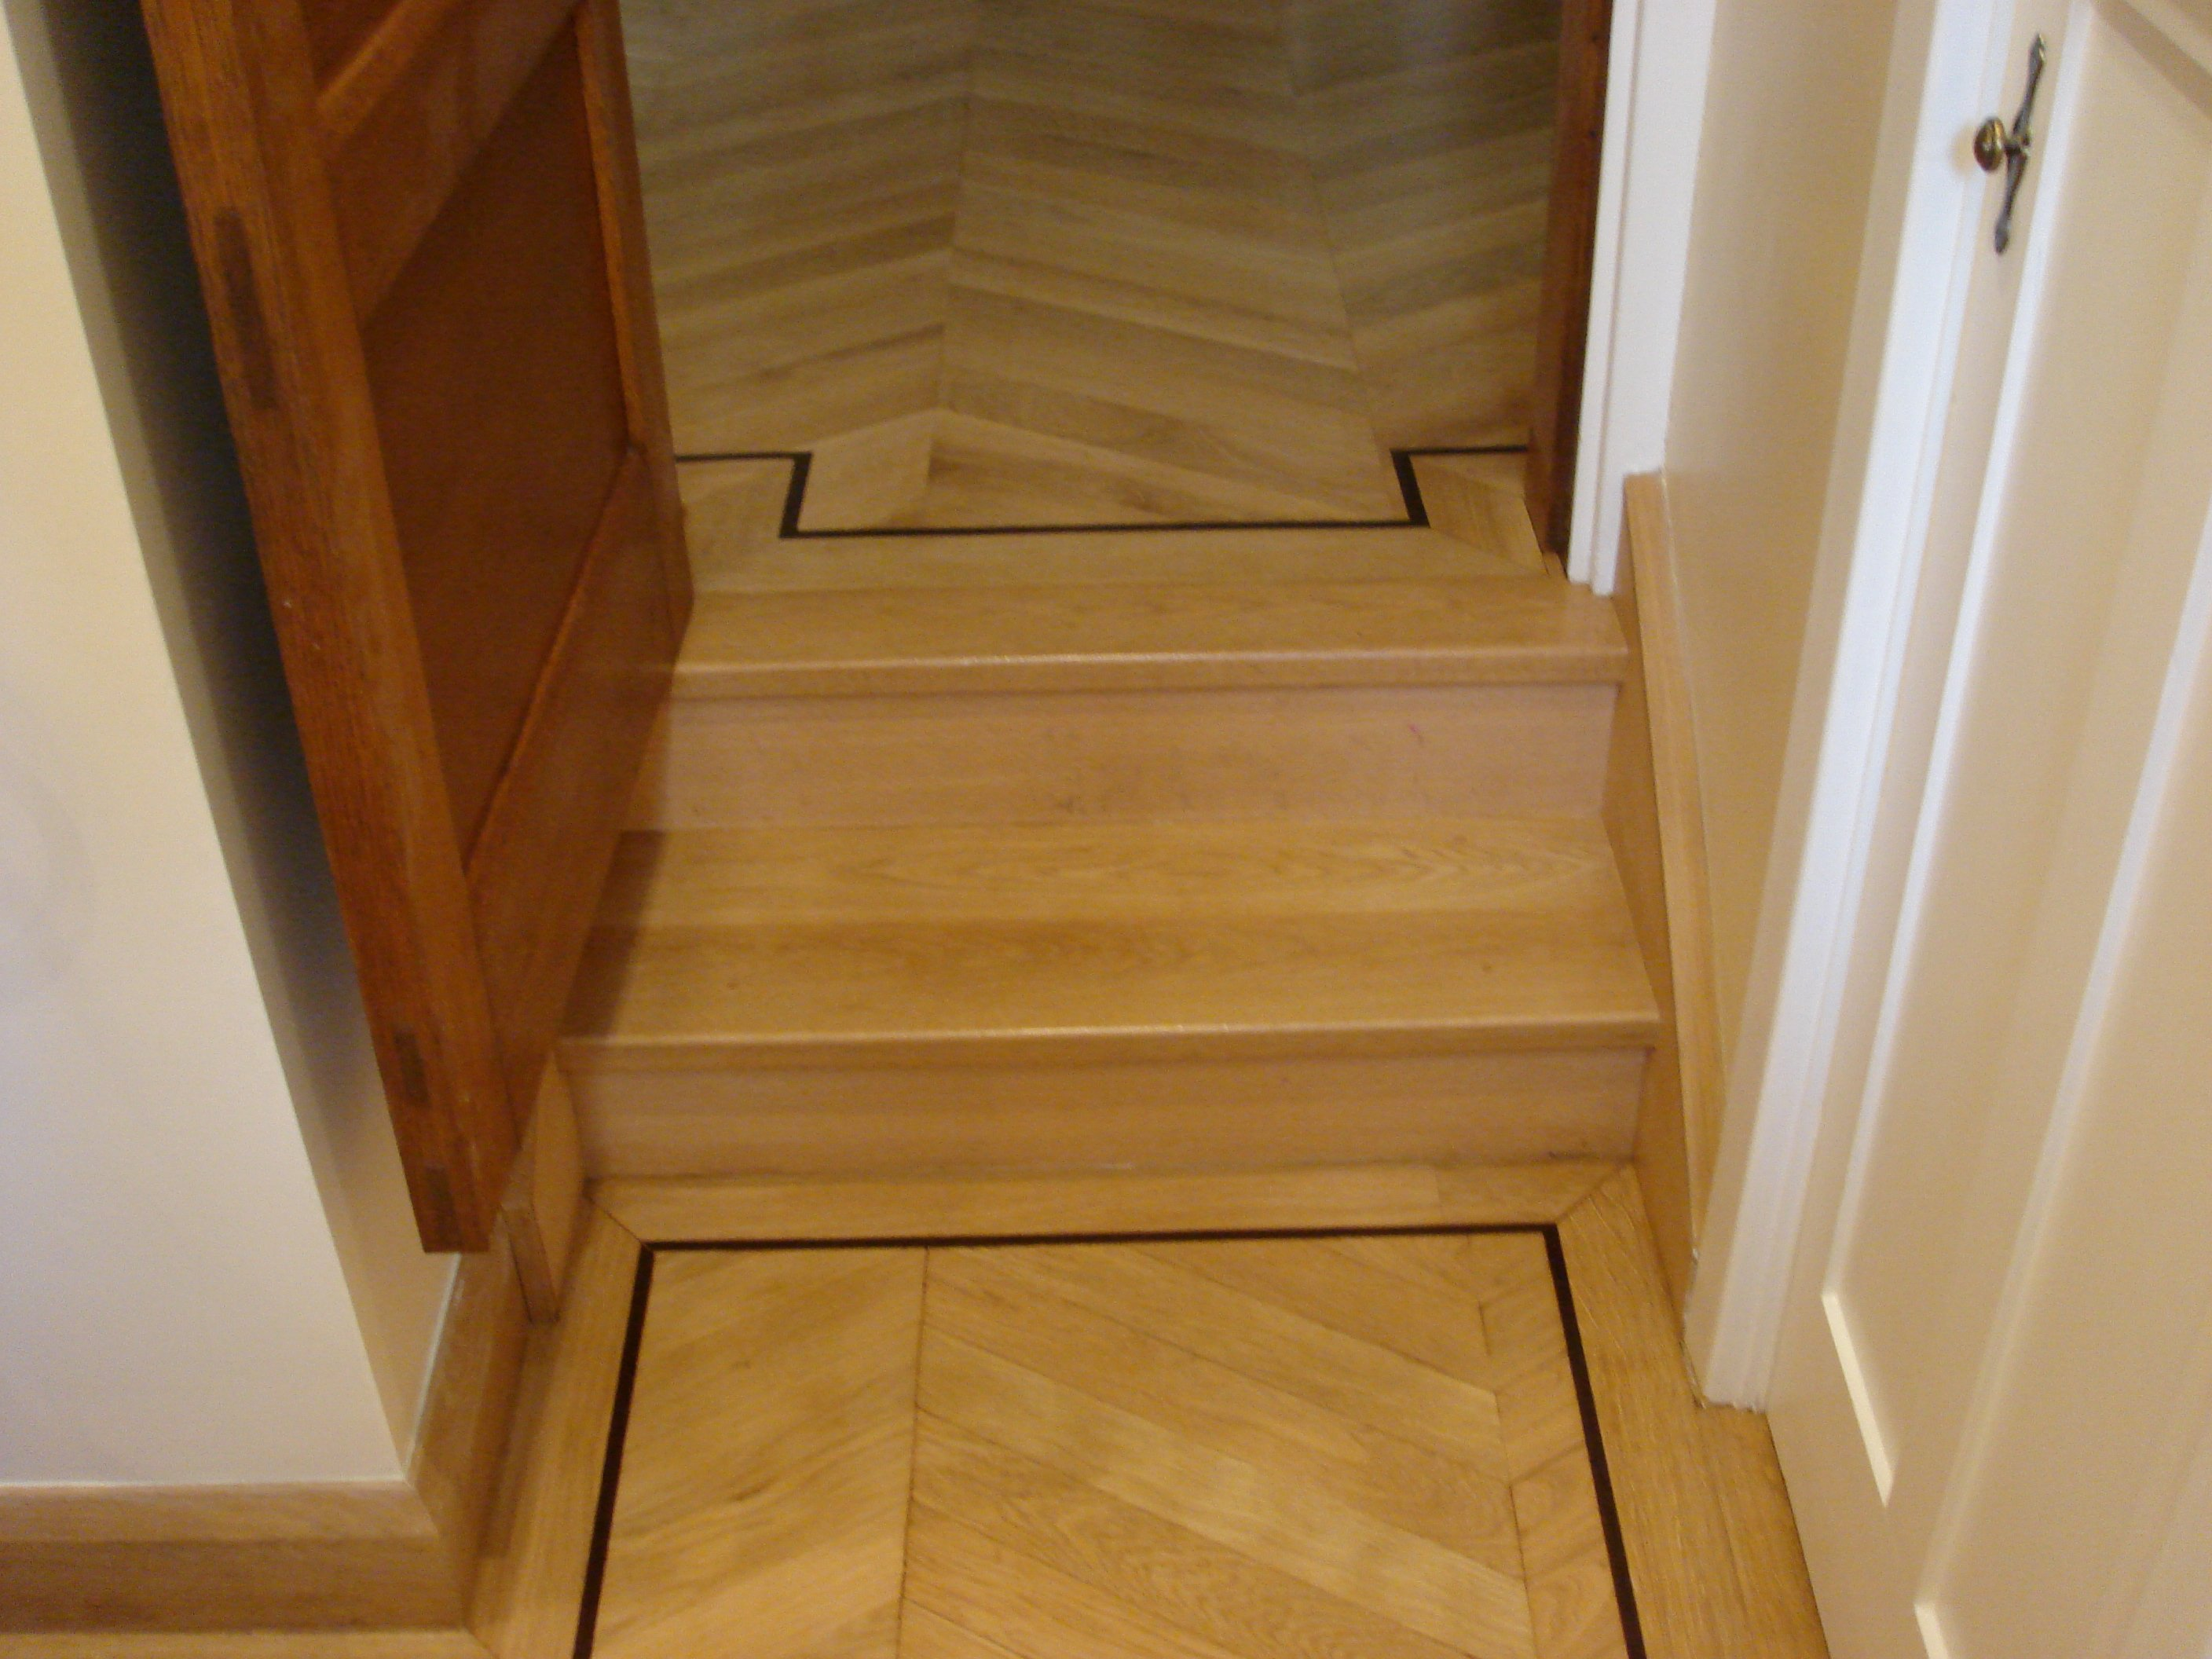 fitted and embellished parquet floor